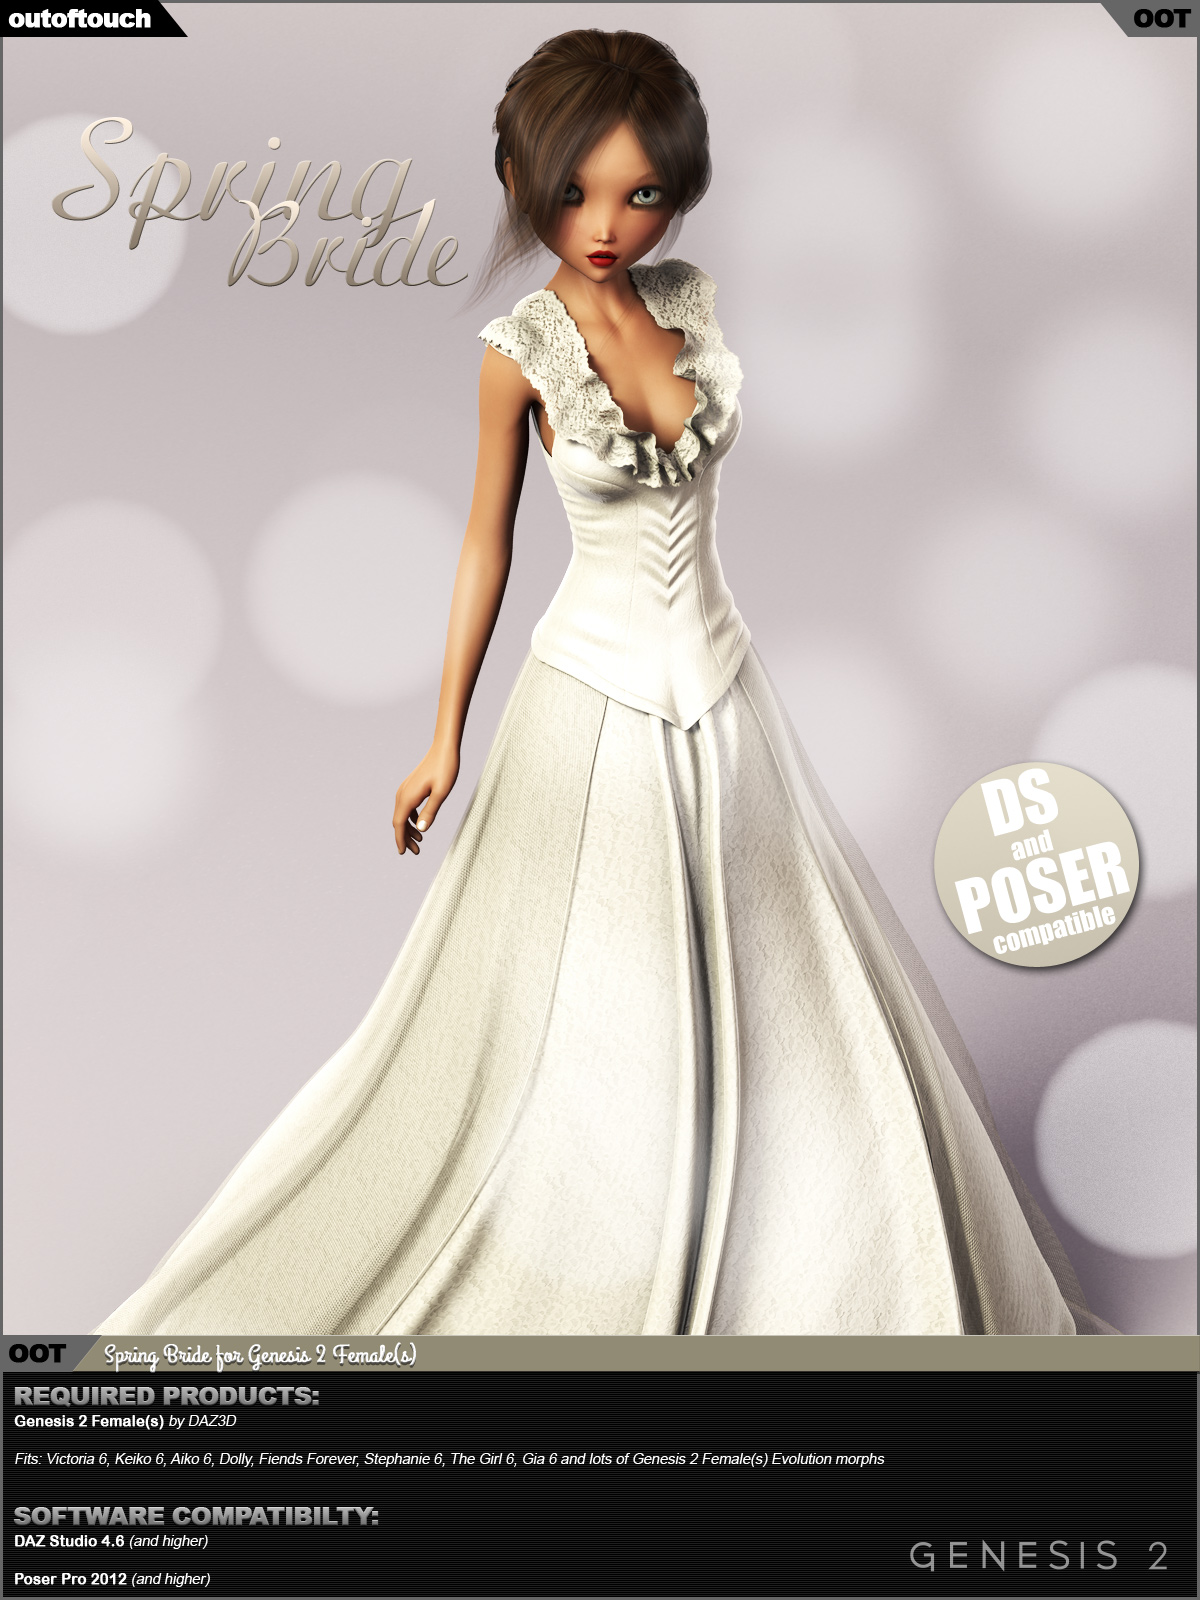 Spring Bride Gown for Genesis 2 Female(s) by outoftouch